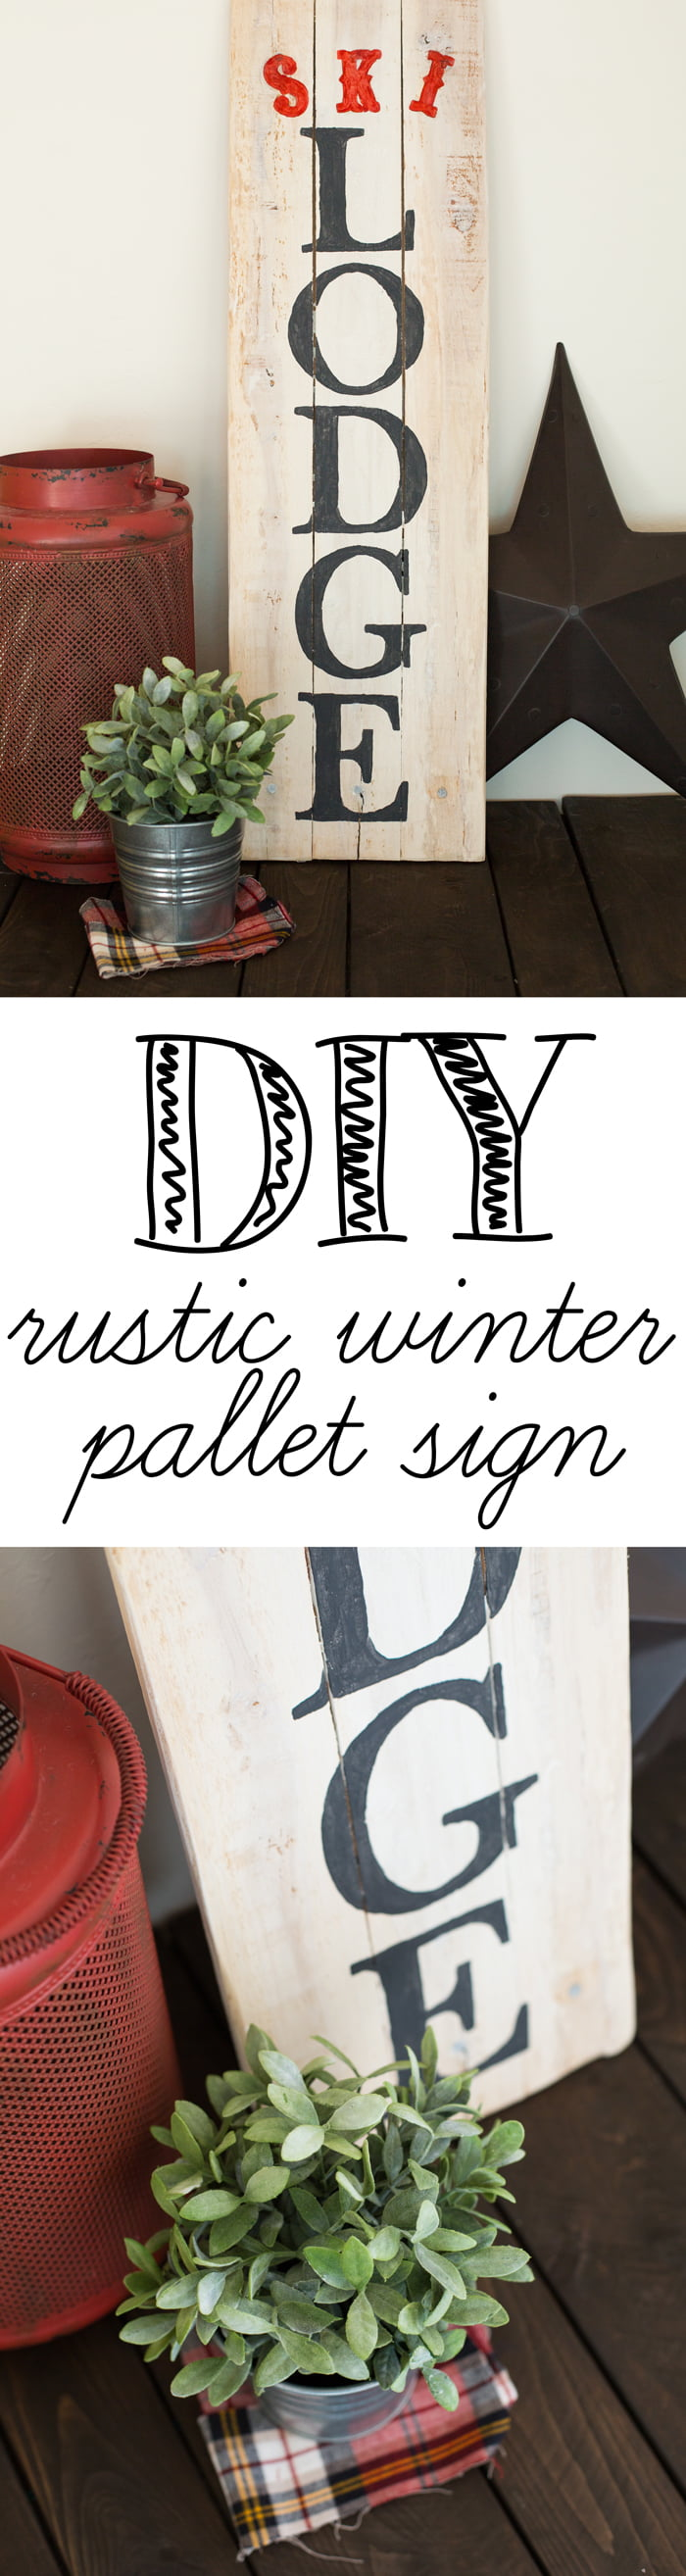 DIY Rustic winter pallet sign